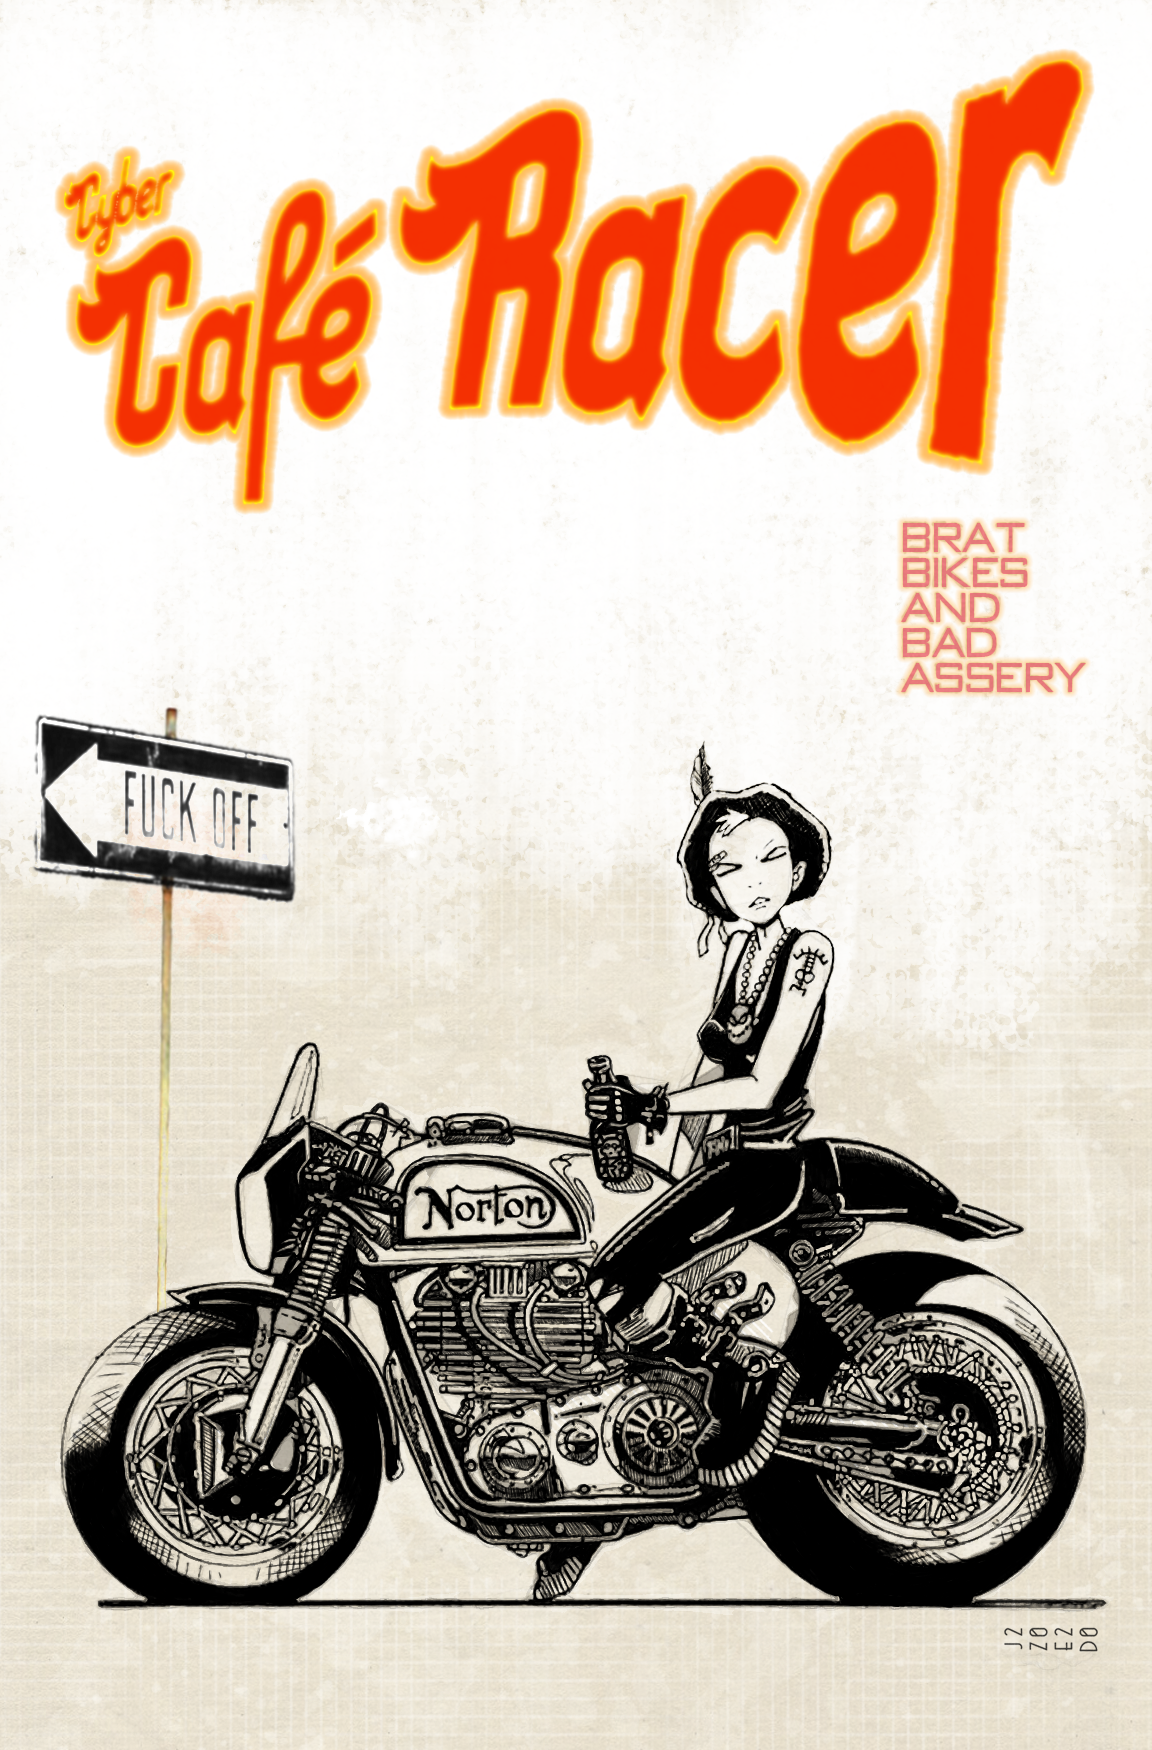 Cyber Cafe Racer - 6